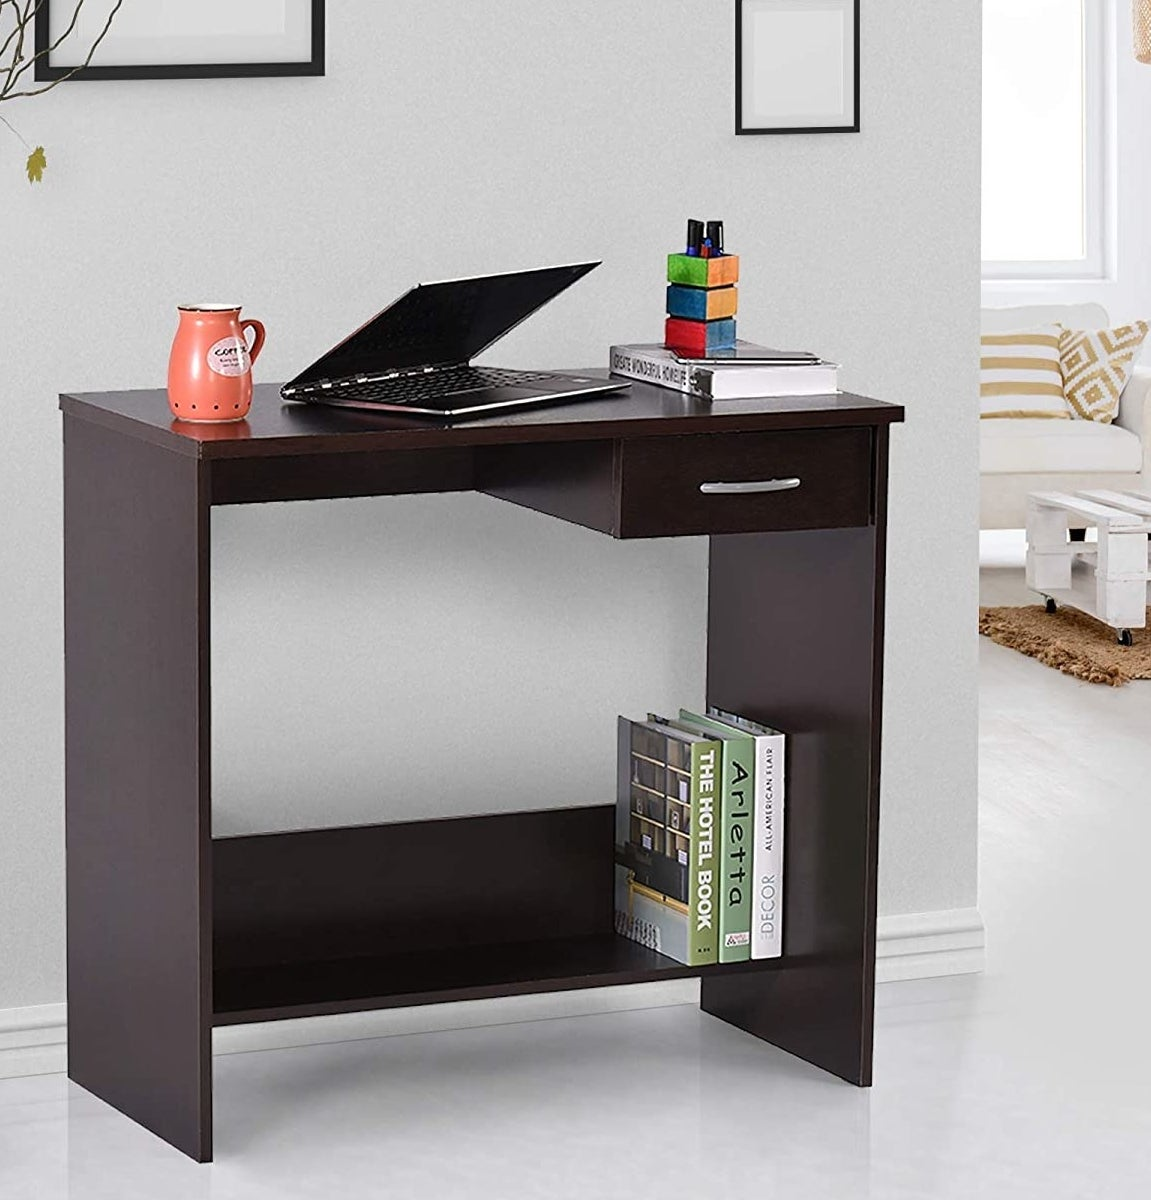 A room with a desk that has a laptop, stationery, and books on it